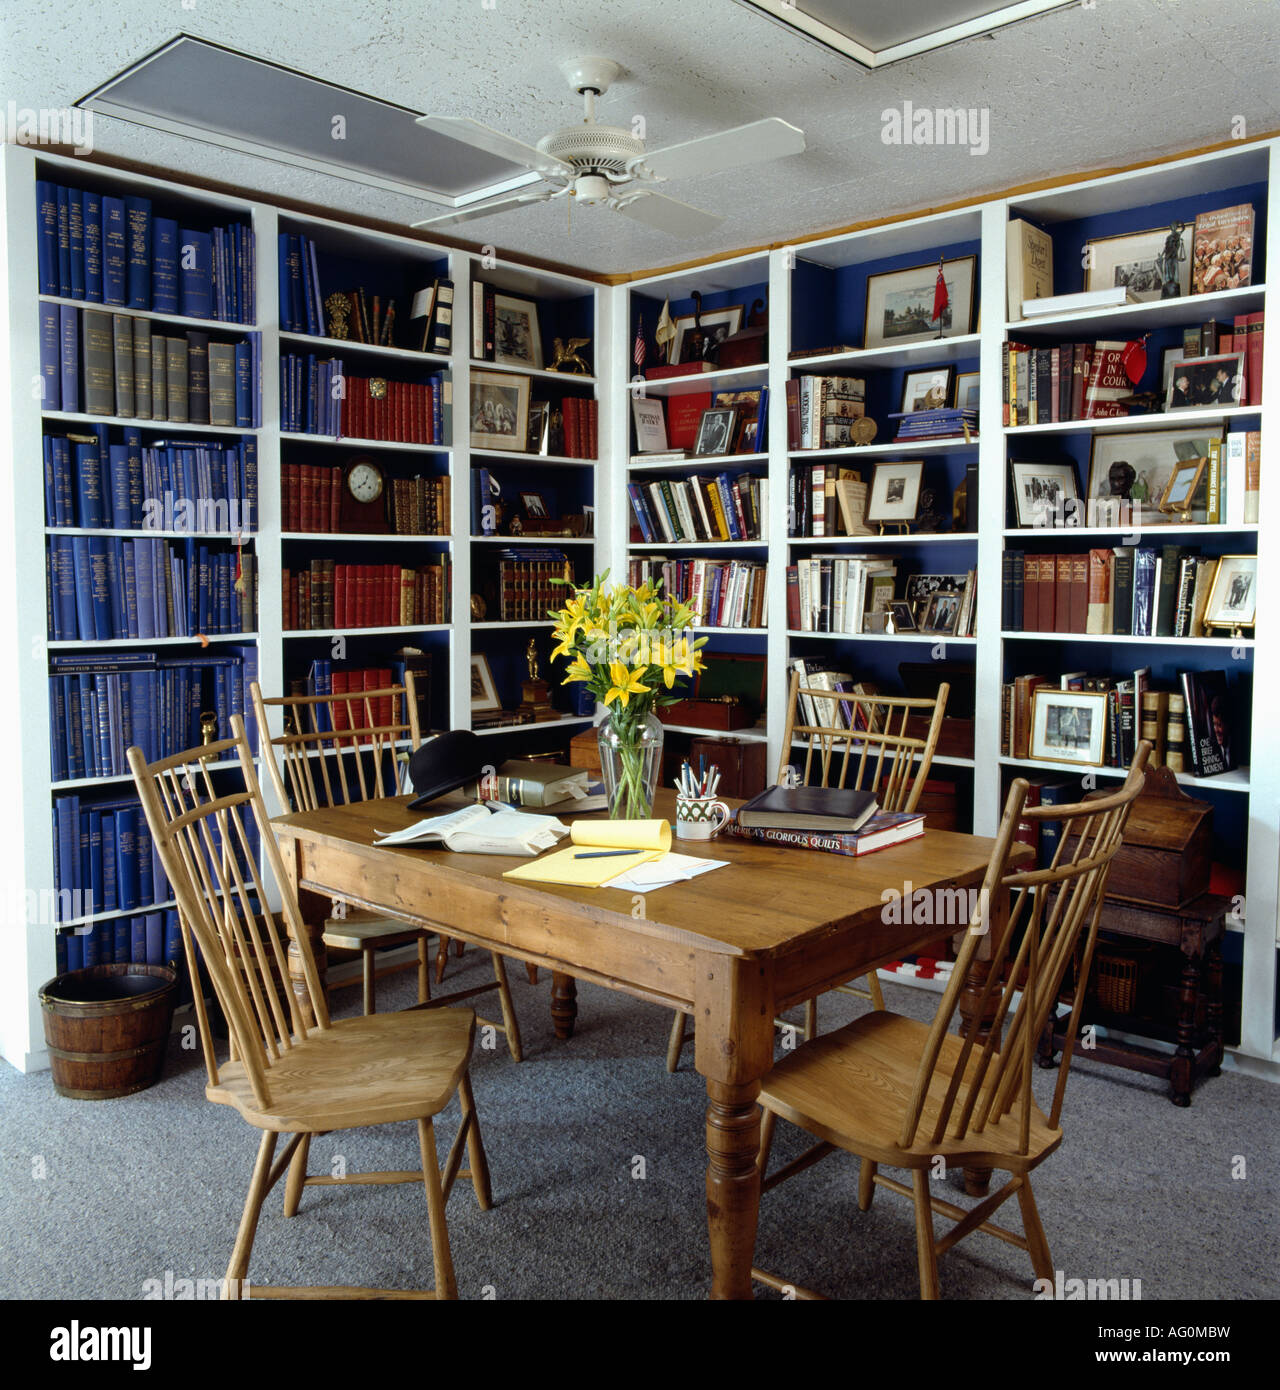 Antique pine table and chairs in eighties dining room study with walls of  bookshelves - Antique Pine Table And Chairs In Eighties Dining Room Study With